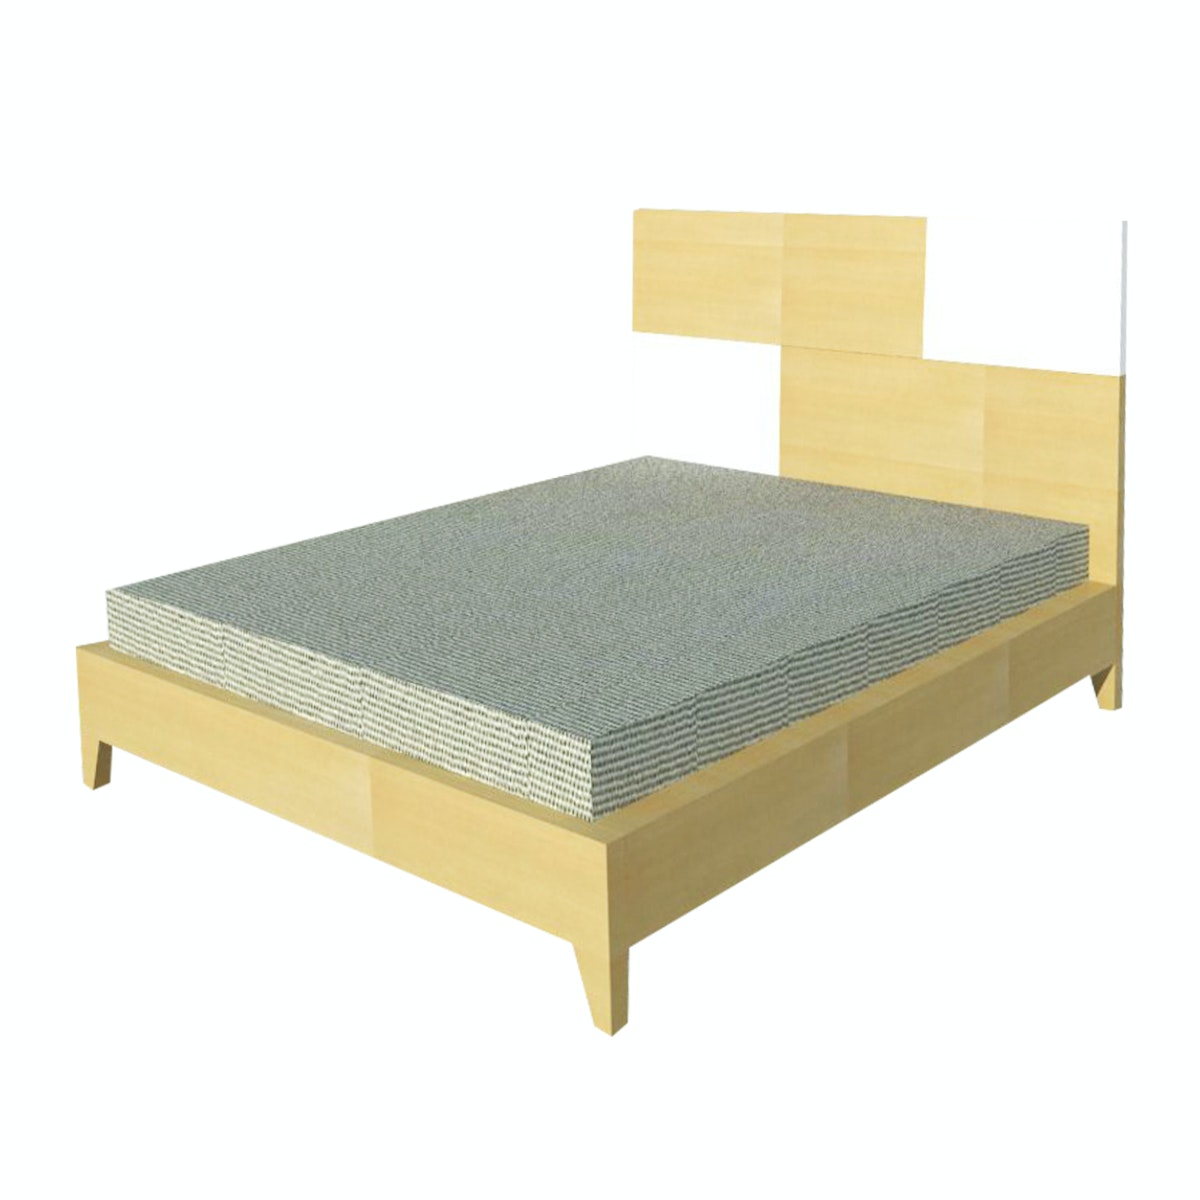 Alegre Nordic Bed Set Queen